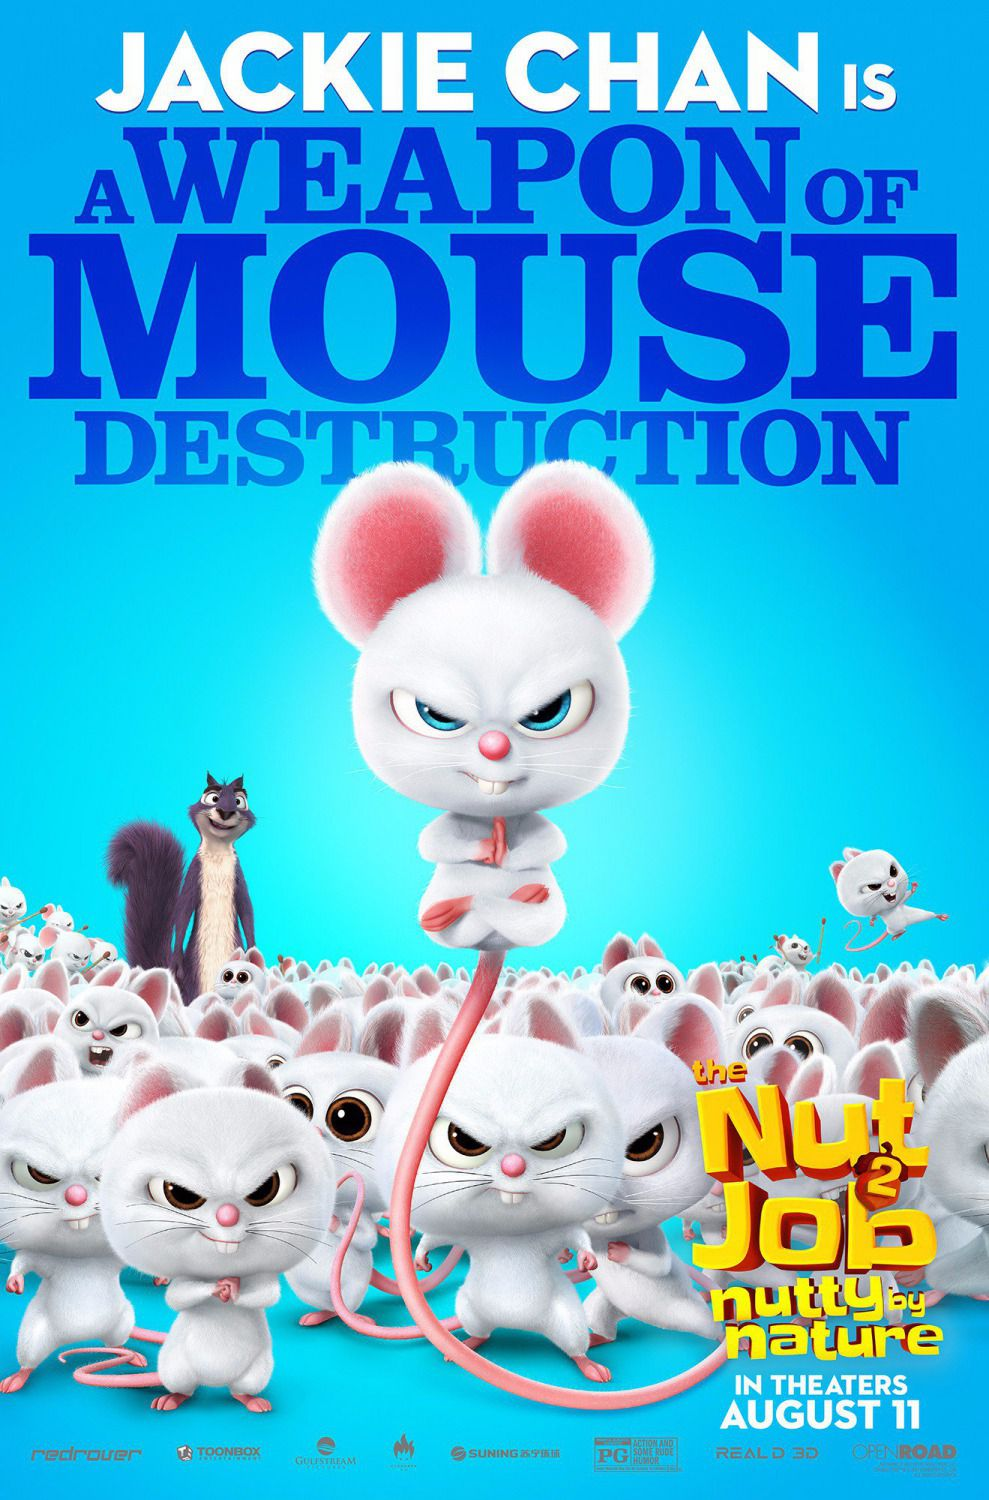 Film - The Nut Job 2 - Operazione Nocciolina 2 - Nutty by Nature - A Weapon of Mouse destruction